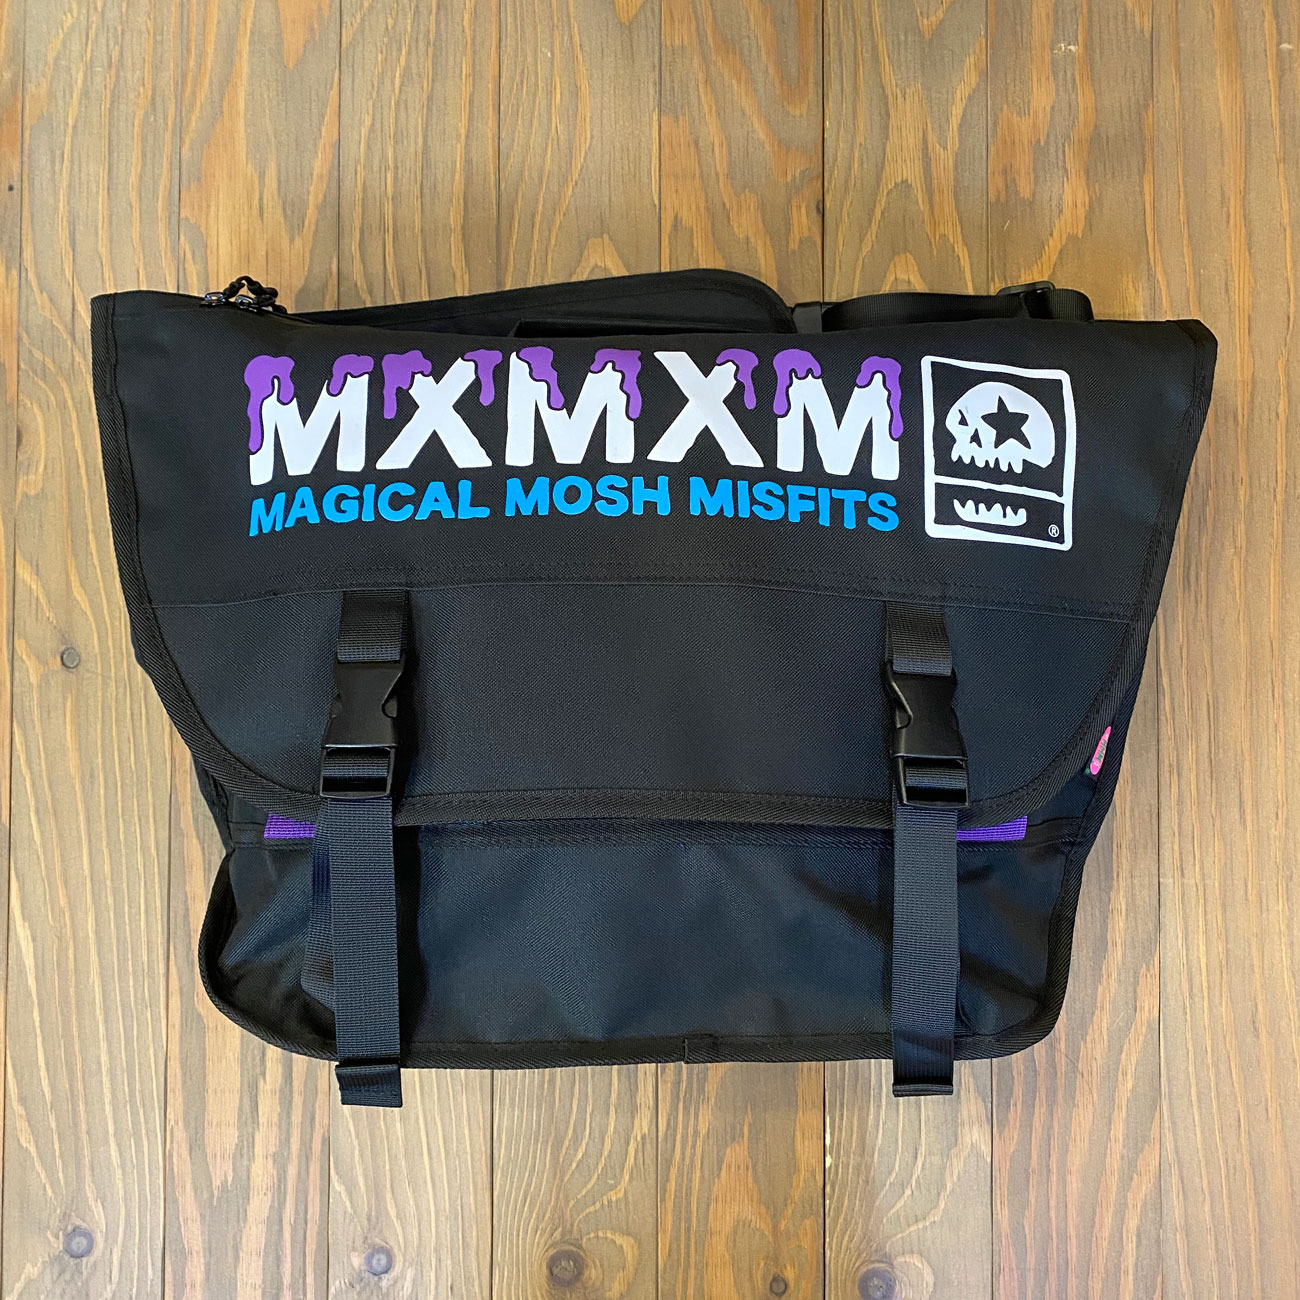 MAGICAL MOSH MESSENGER BAG